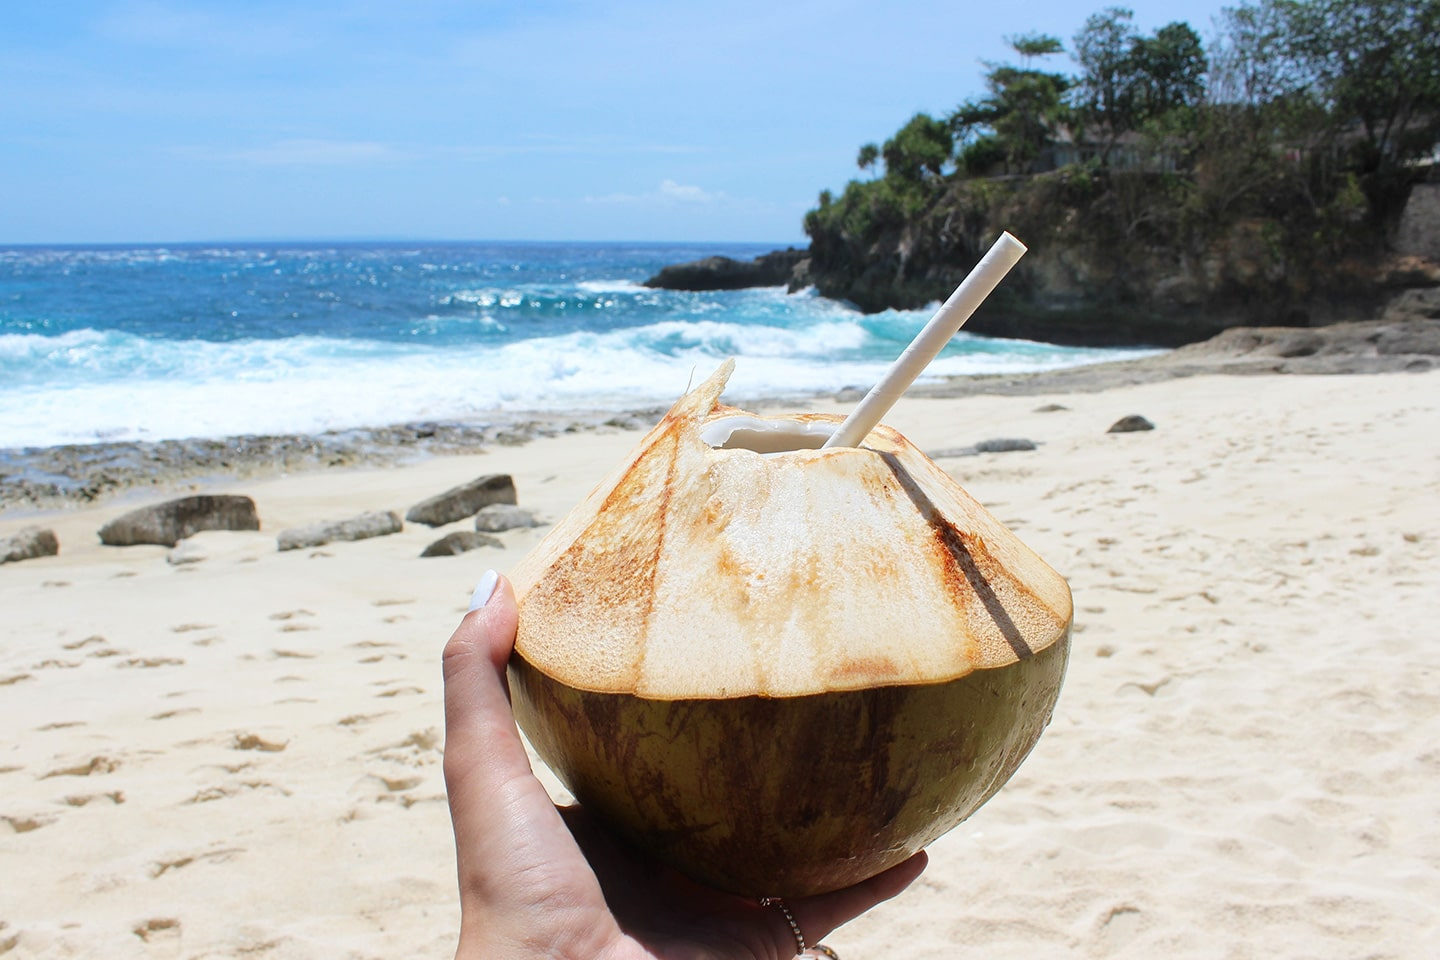 person holding a young coconut on the beach